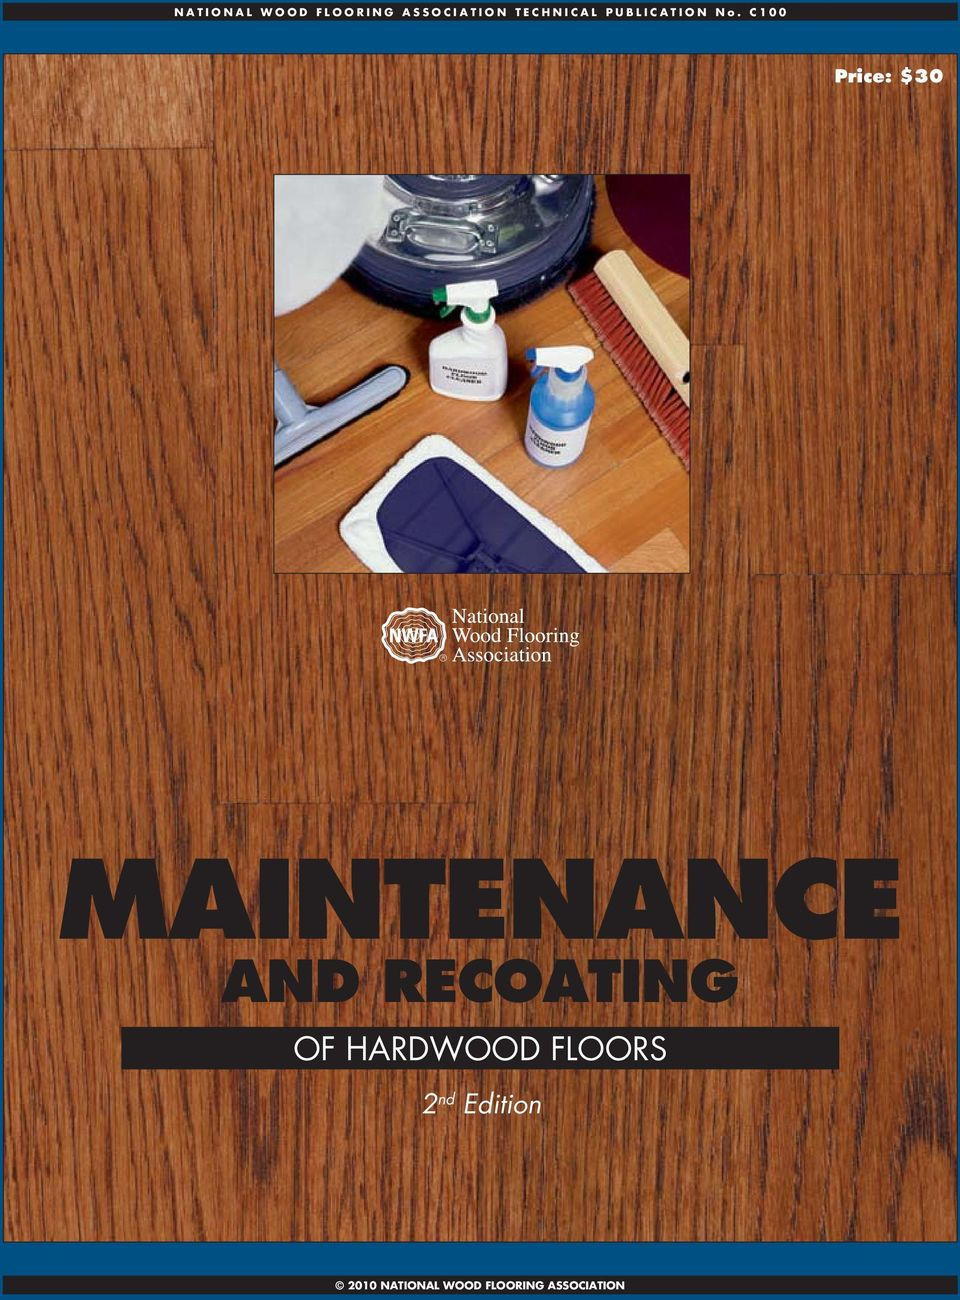 Hallmark Hardwood Flooring Prices Of Maintenance and Recoating Of Hardwood Floors 2 Nd Edition Price within Floors 2 Nd Edition 2010